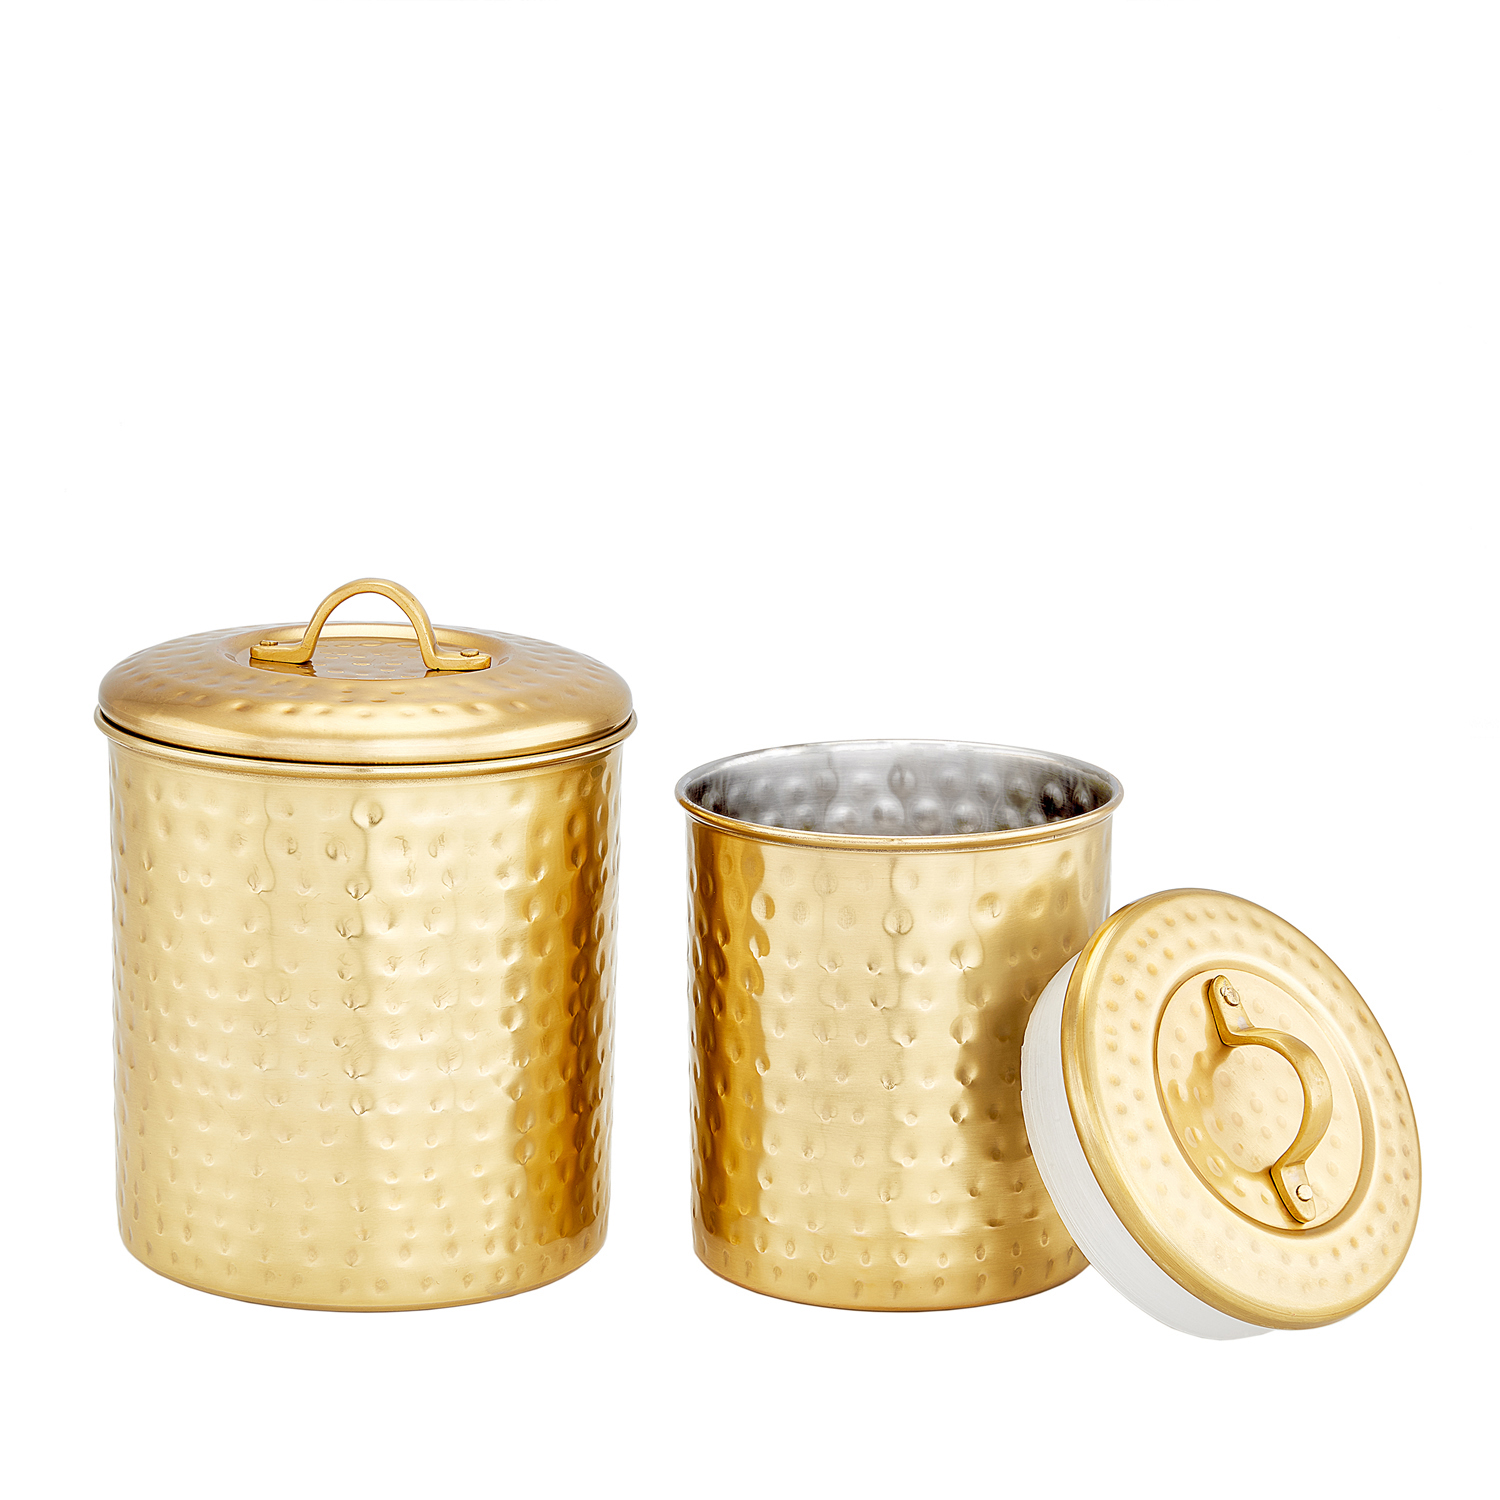 Champagne Tone Storage Canisters, Set of 2